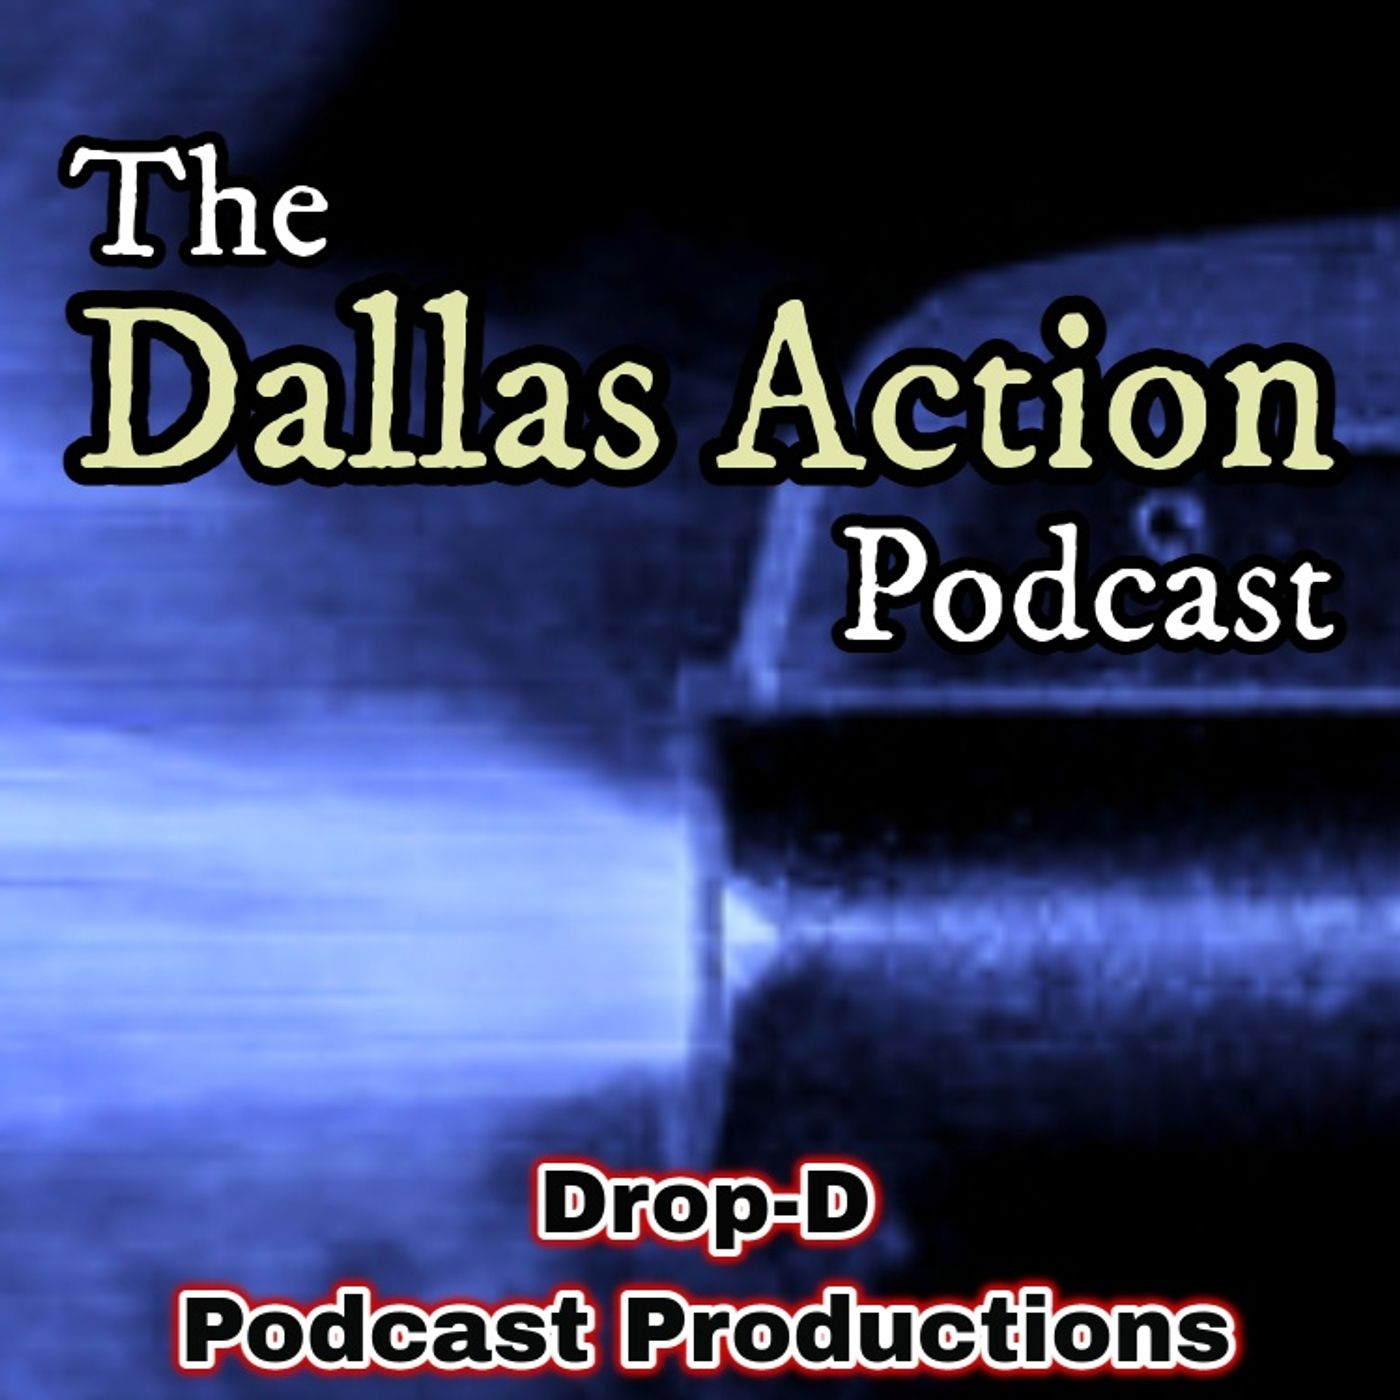 THE DALLAS ACTION Podcast.